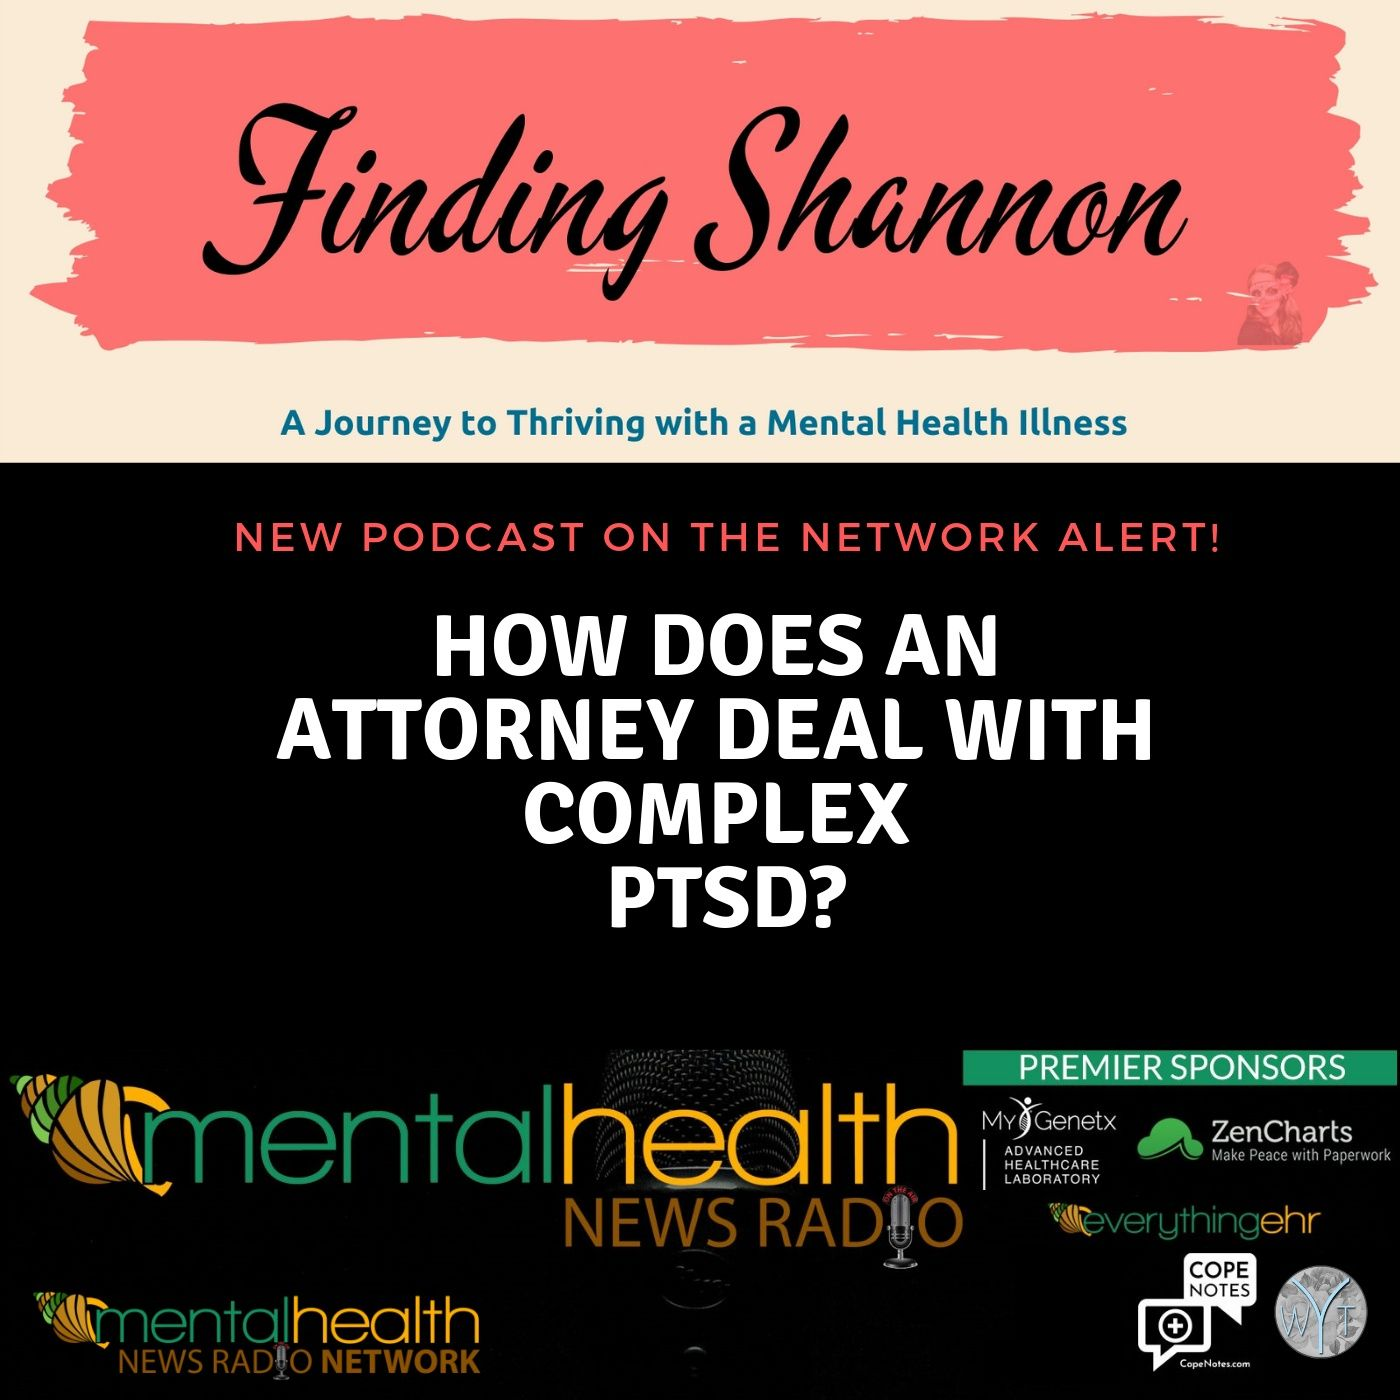 Mental Health News Radio - Finding Shannon - How Does an Attorney Deal with Complex PTSD?